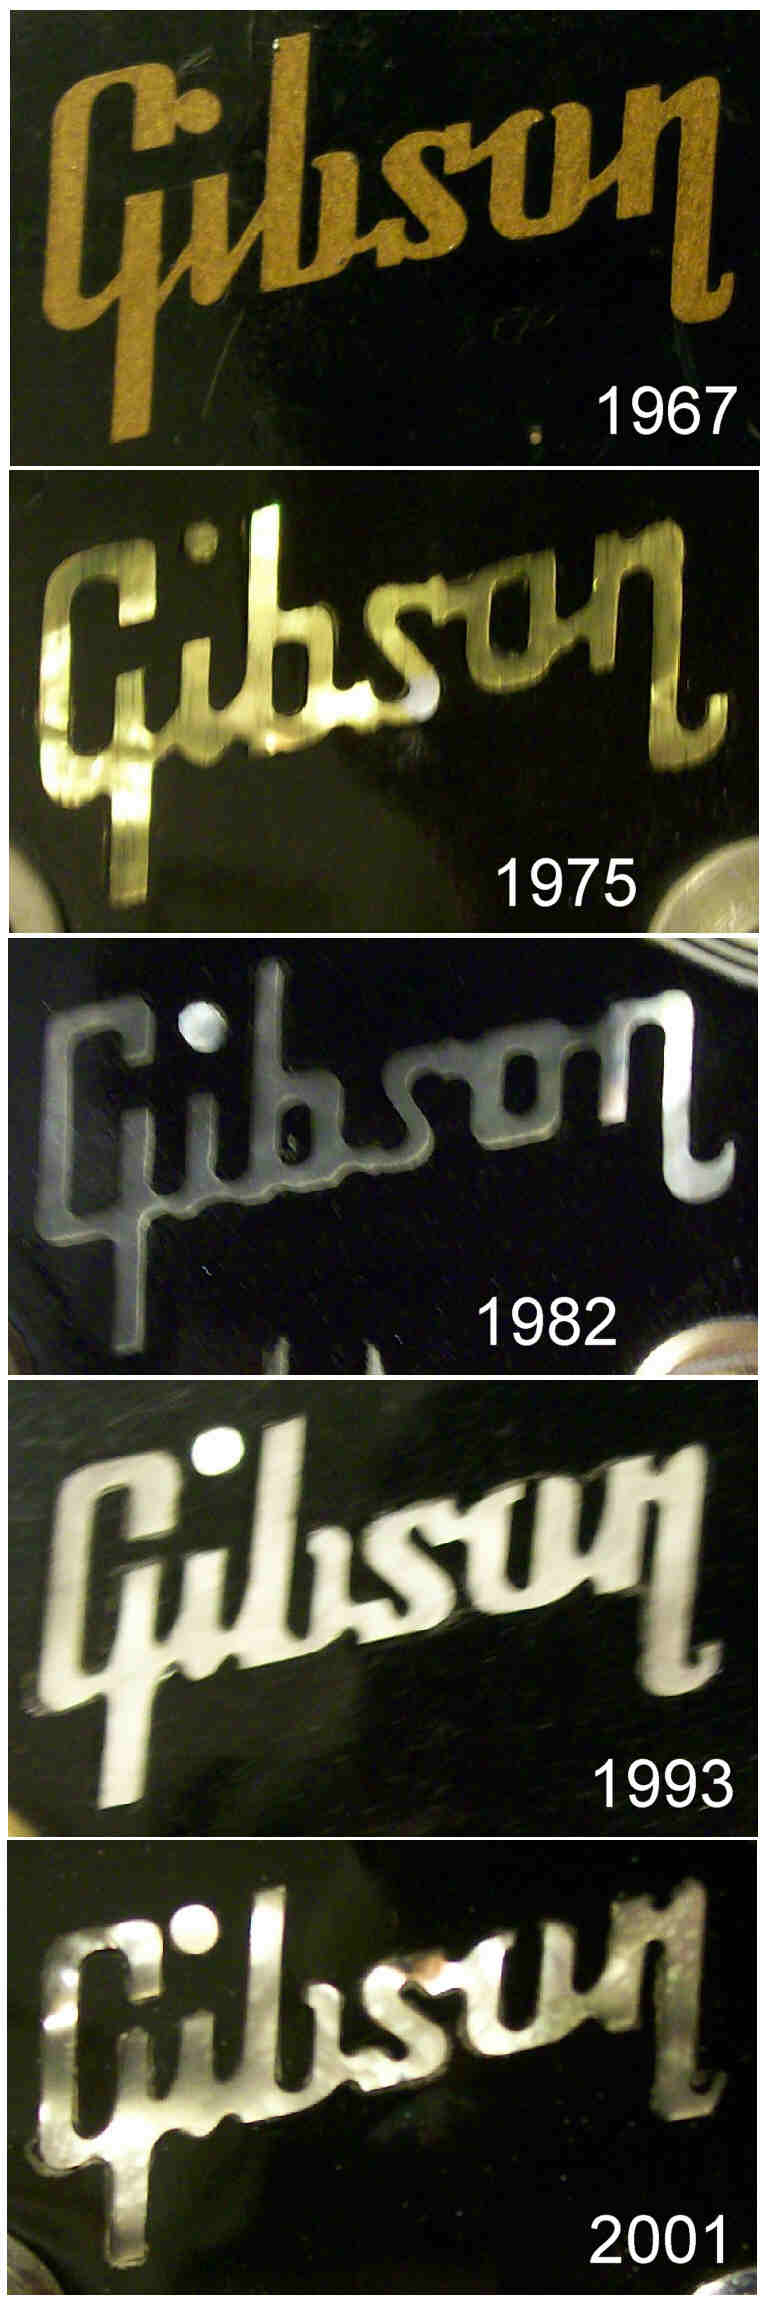 dating gibson logos Les paul's 96th birthday back to google logos.